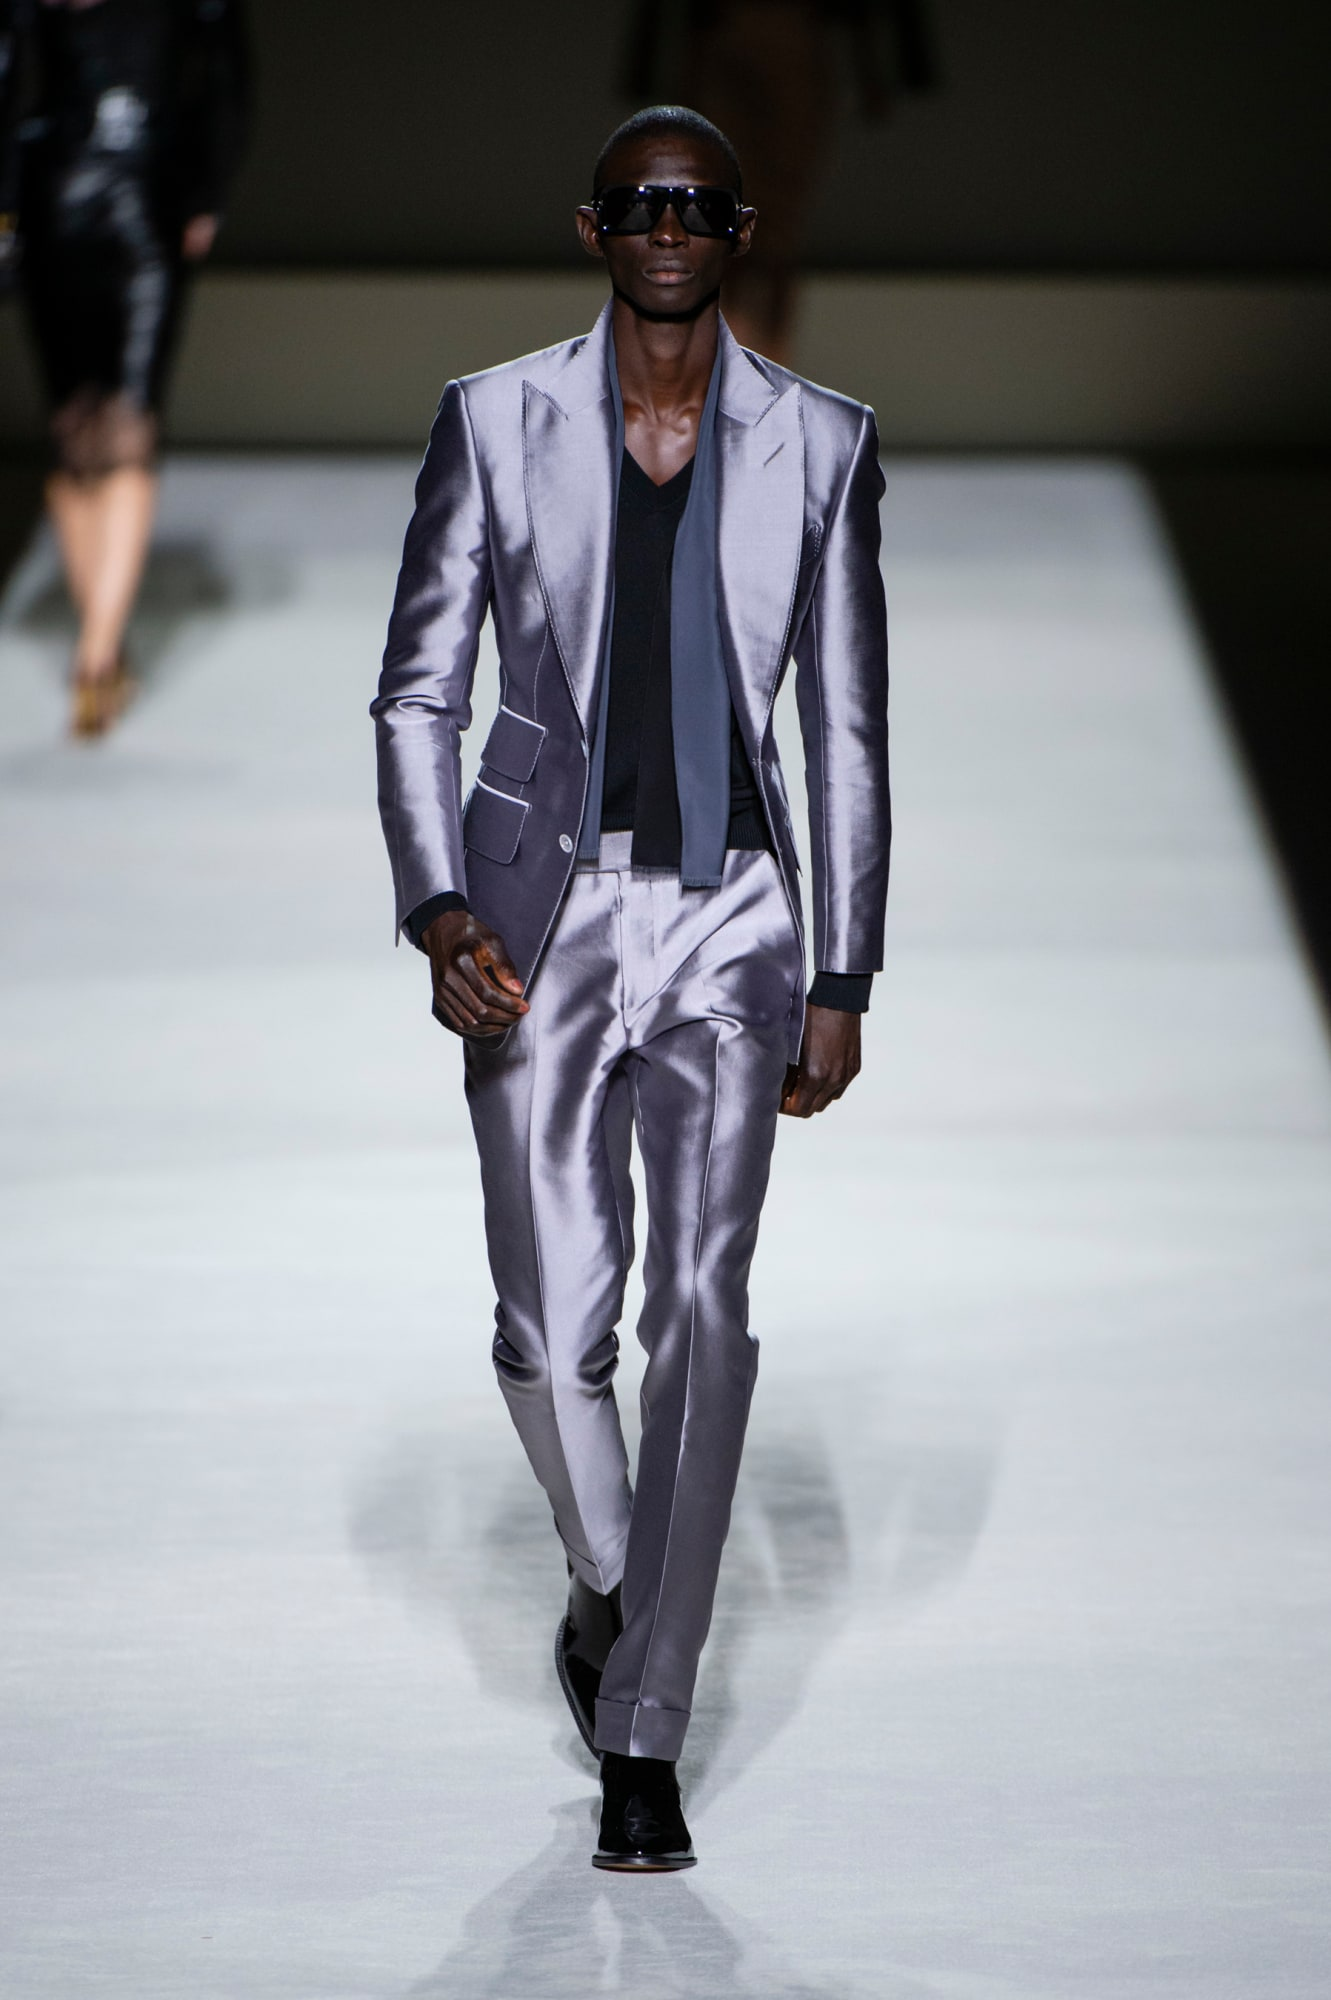 Tom Ford spring 2019 collection, men's metallic suit